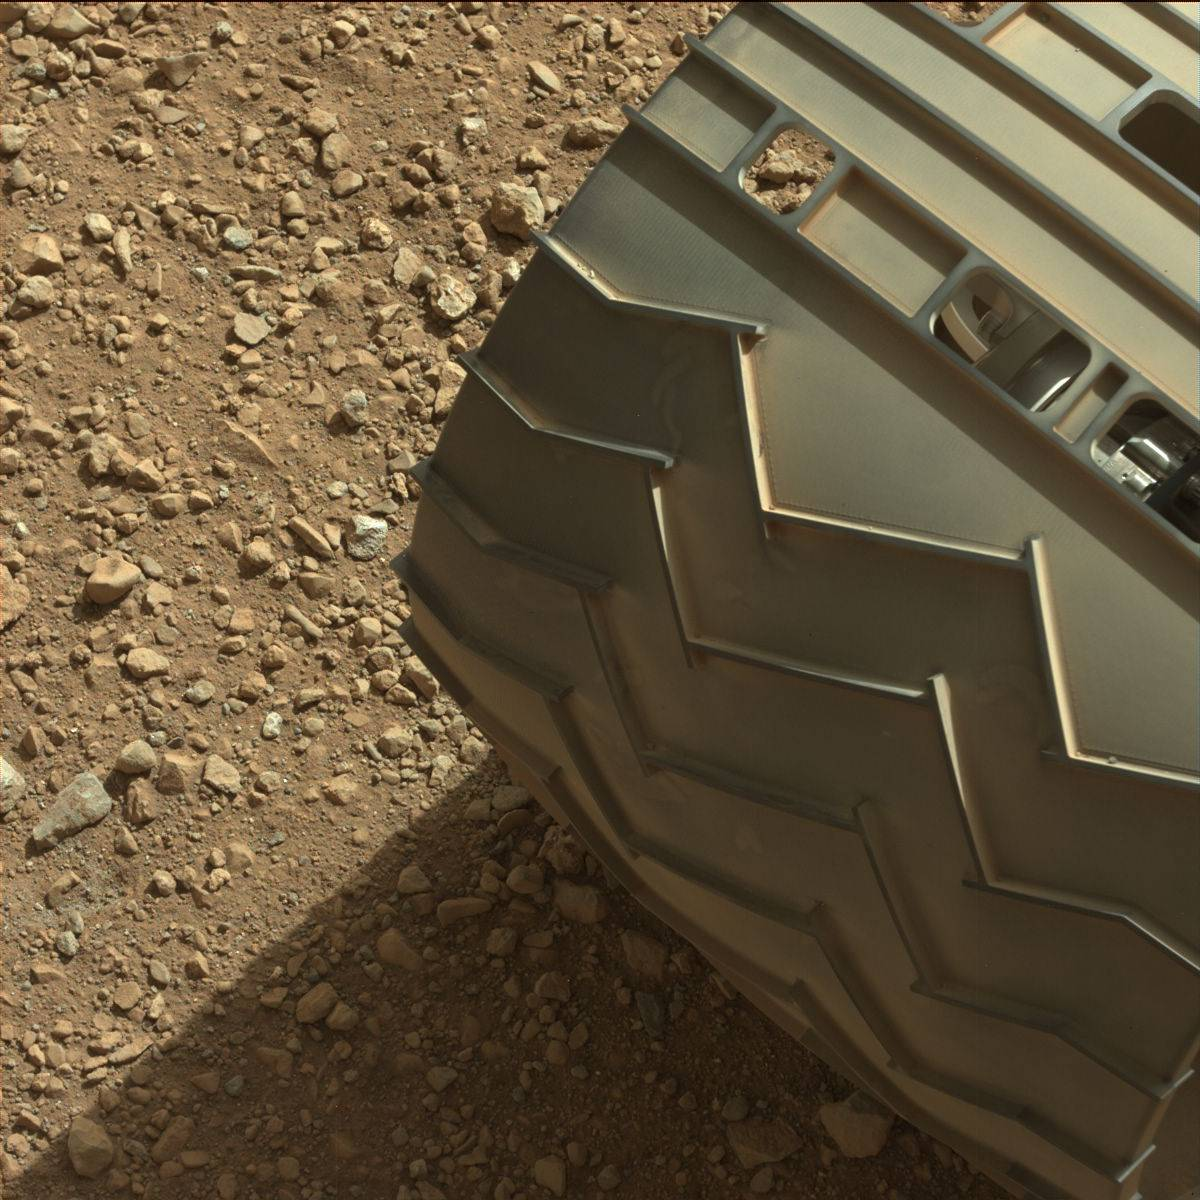 This image was taken by Mastcam: Left (MAST_LEFT) onboard NASA